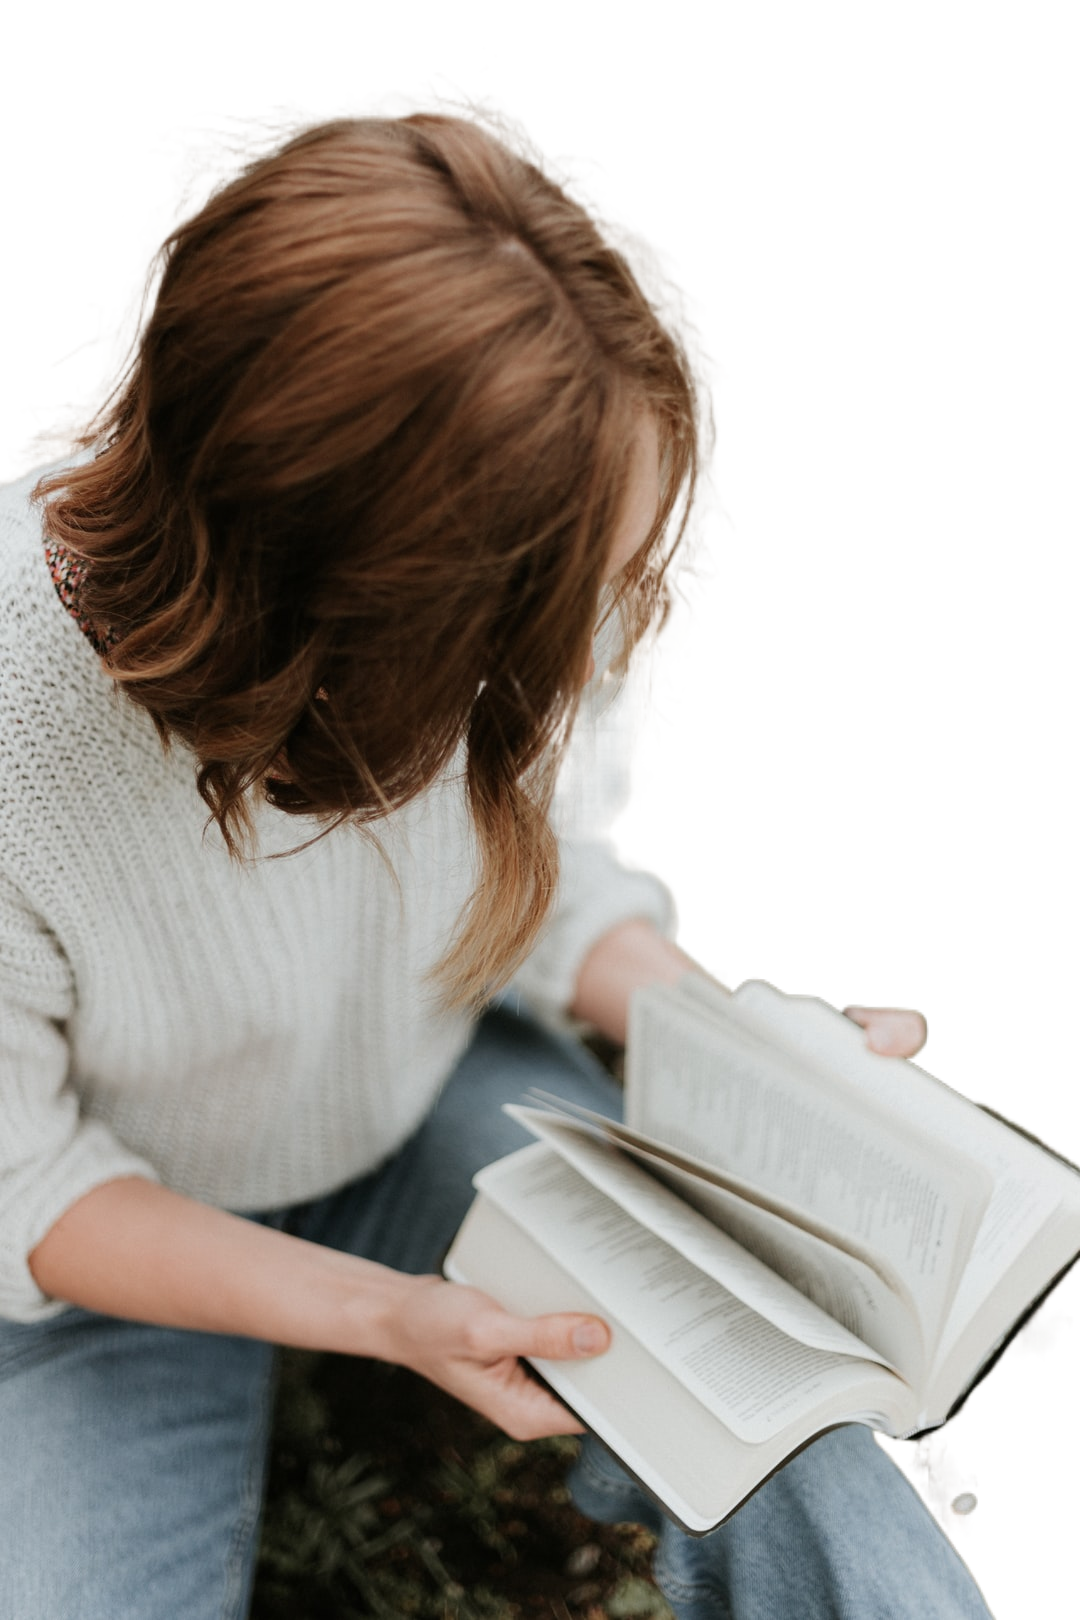 woman sitting on concrete floor reading book